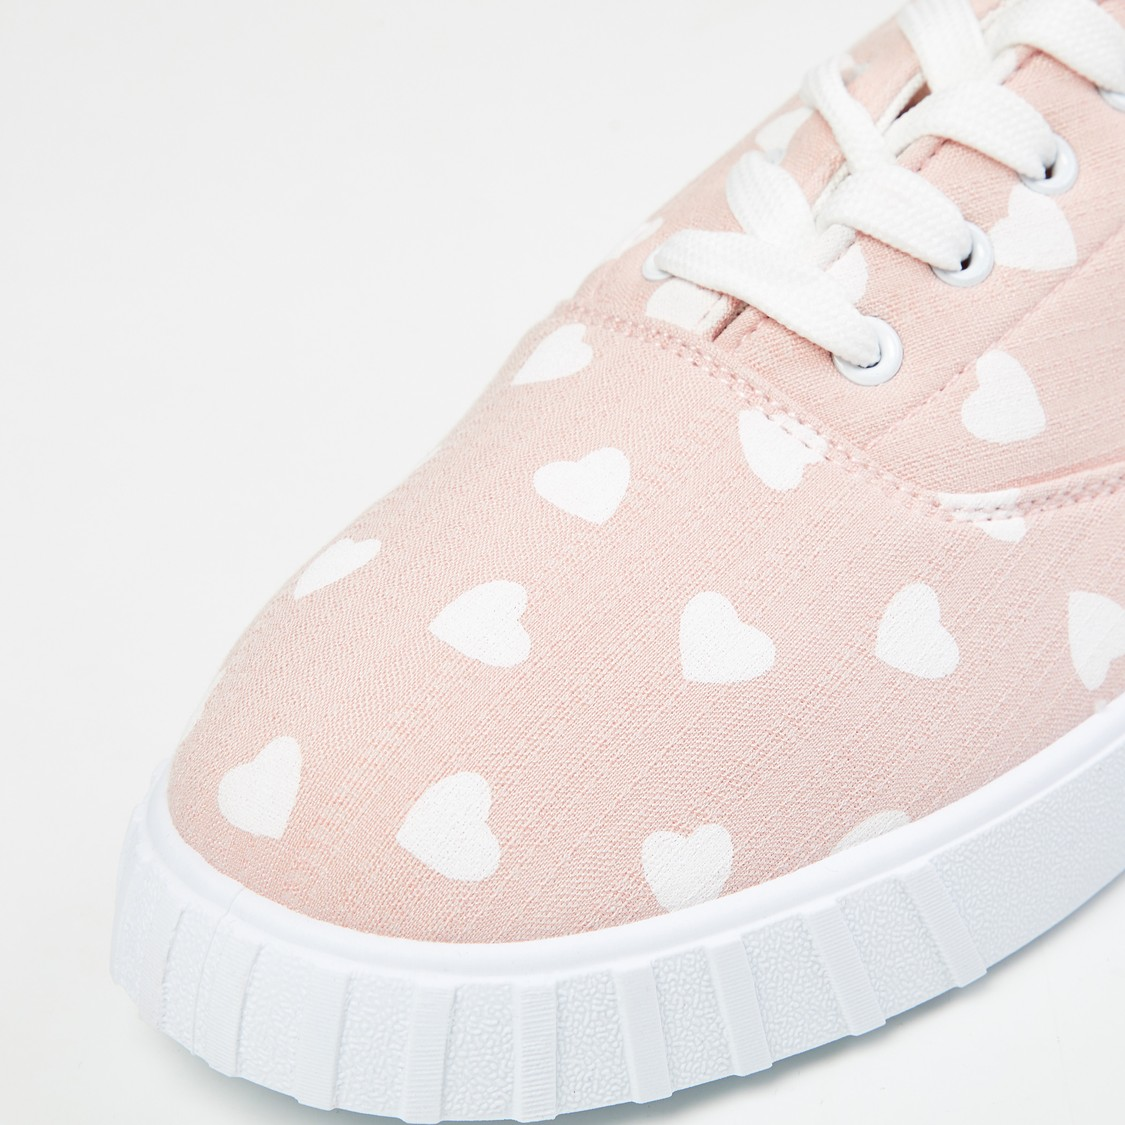 MAX Printed Lace-up Casual Shoes